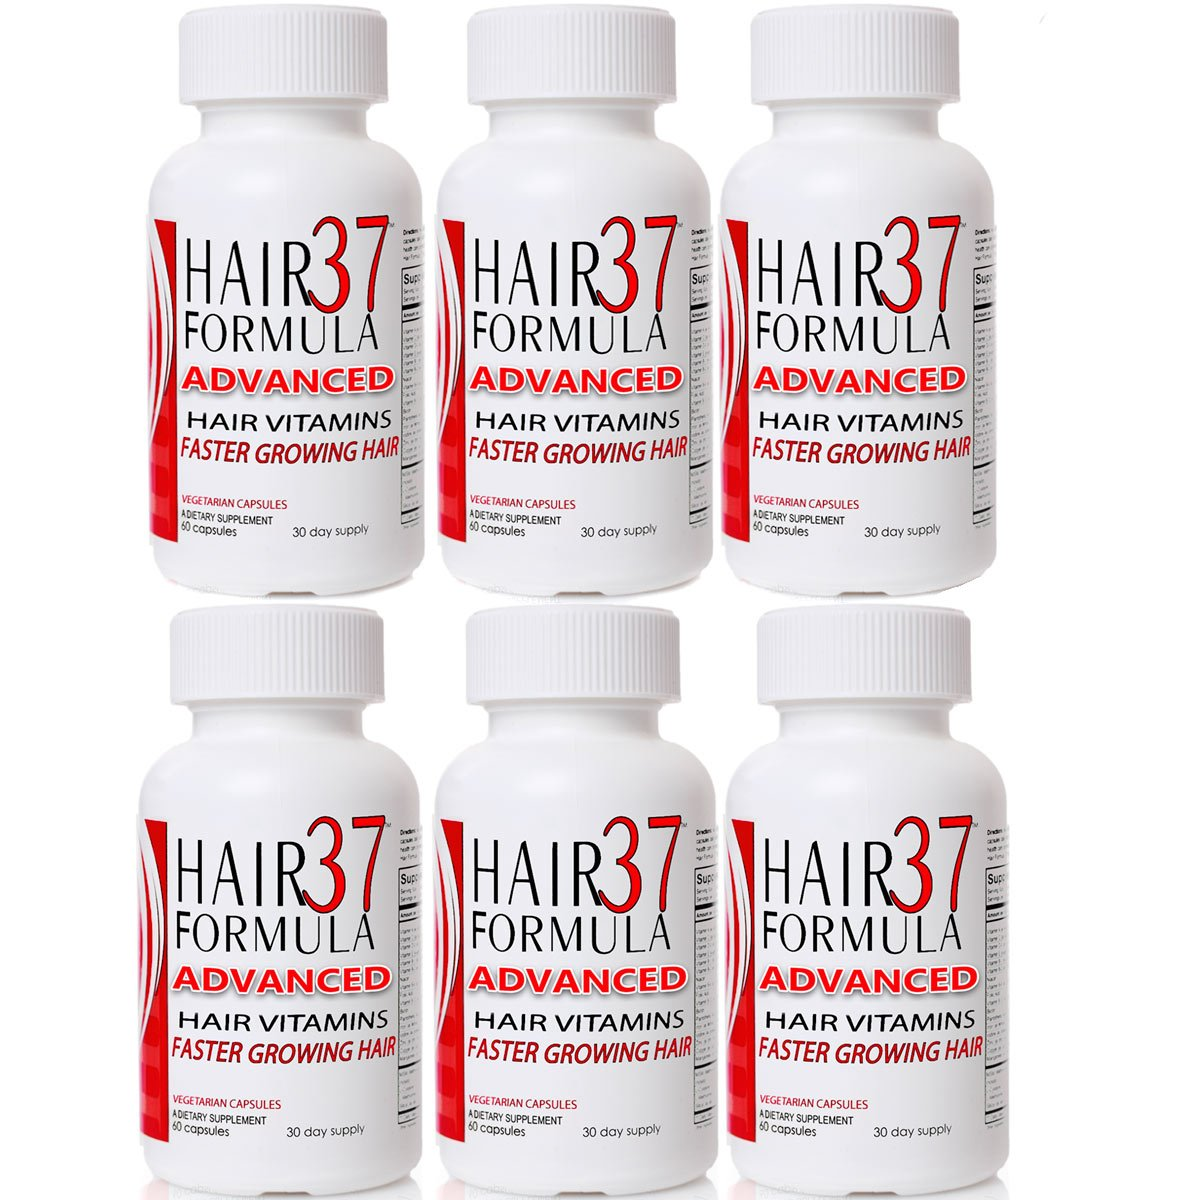 6 Pack Hair Vitamins for Fast Hair Growth Hair Formula 37 Advanced Best Value on Vitamins for Hair Skin Nails